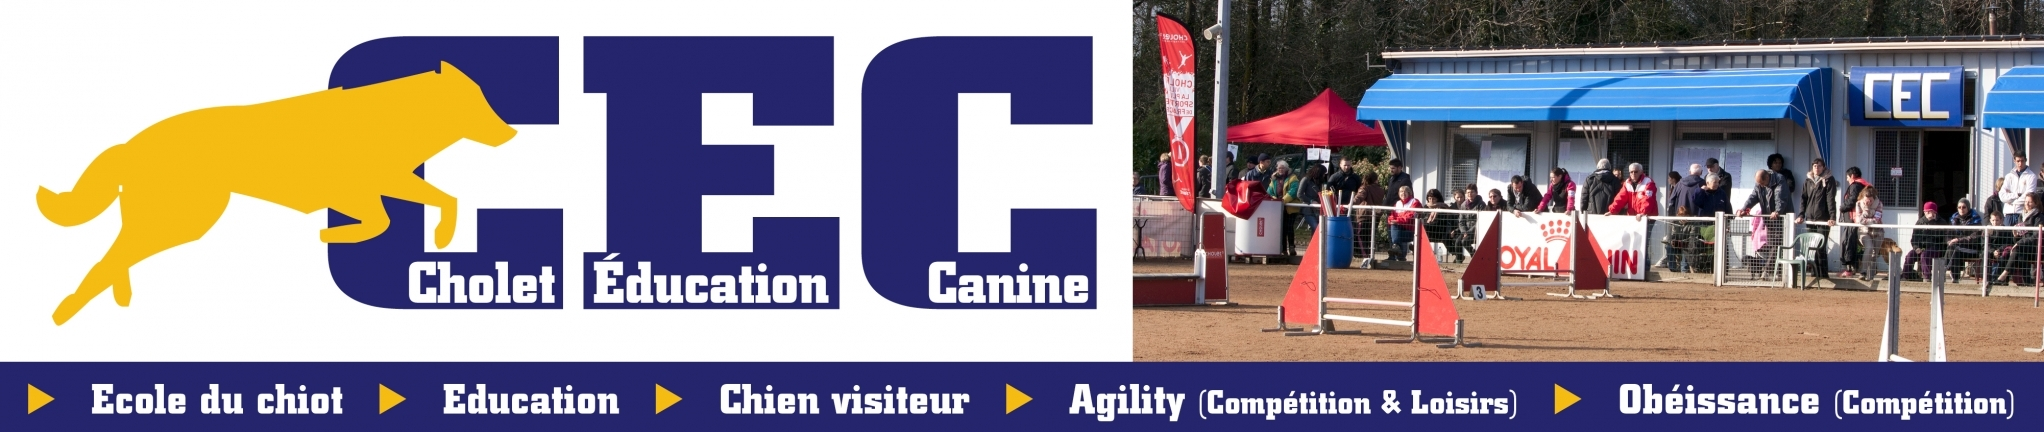 Cholet-Education-Canine